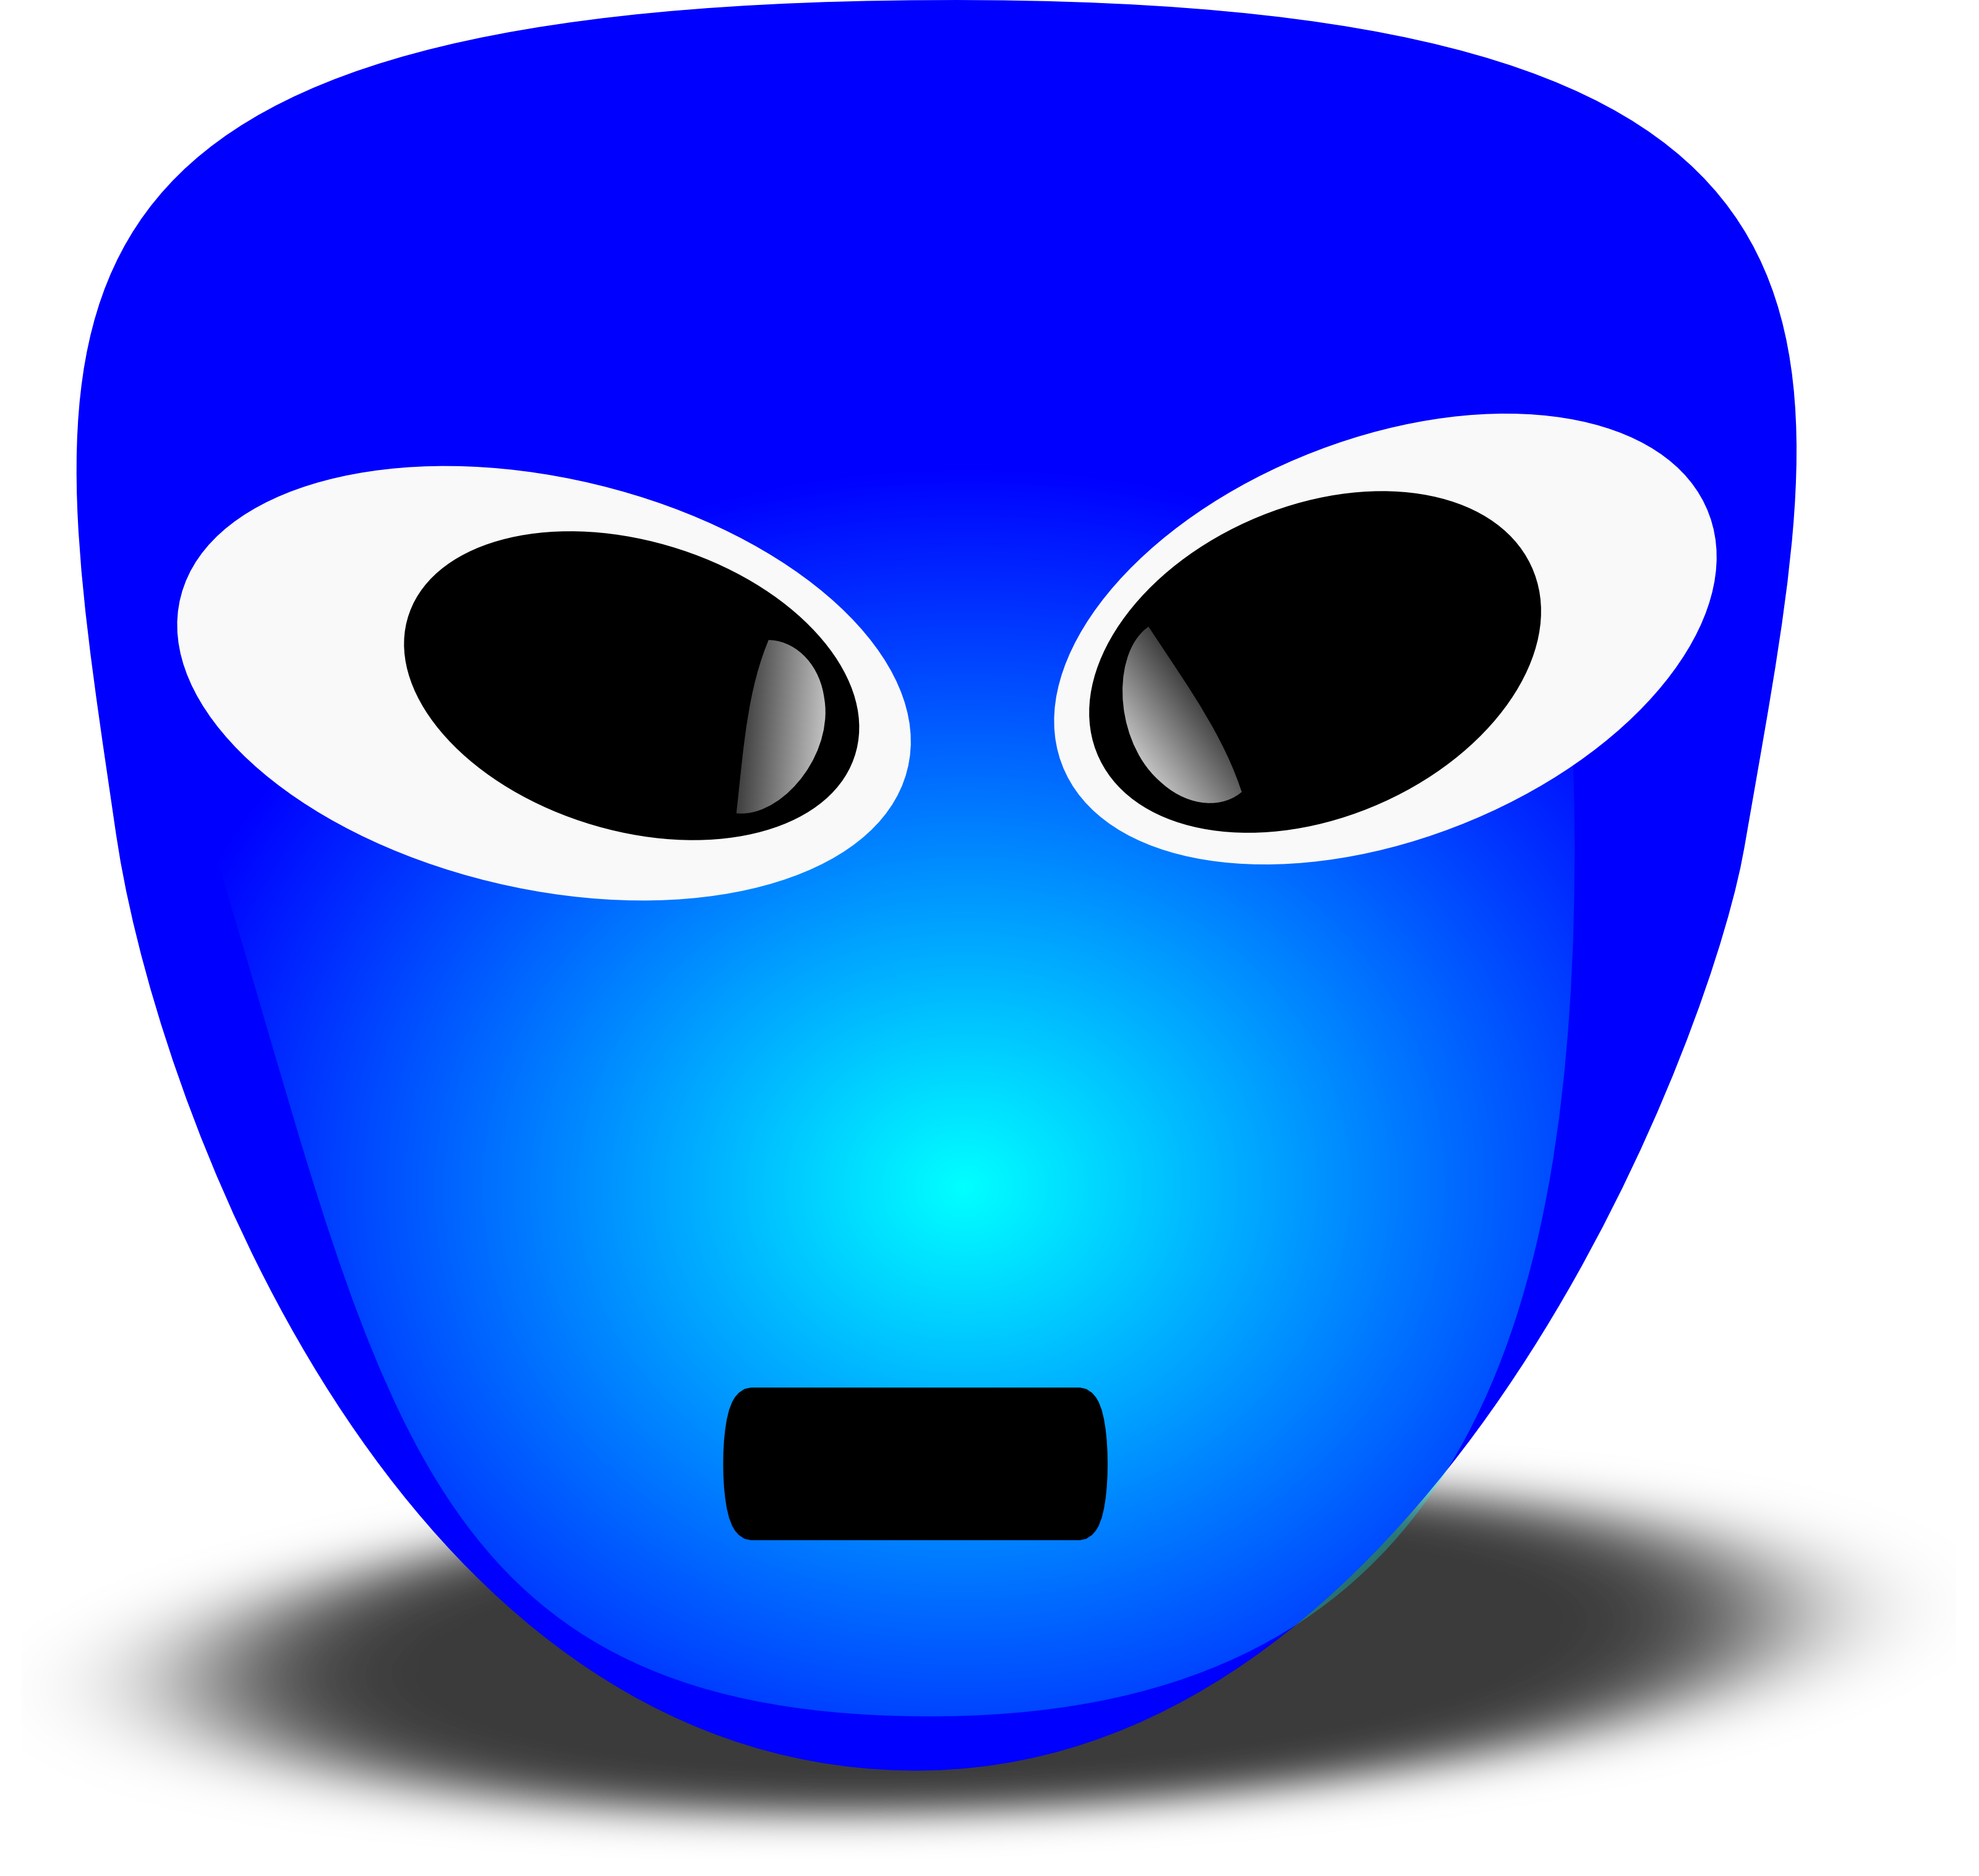 3200x3034 Free 3d Extra Terrestrial Smiley Face Clipart Illustration